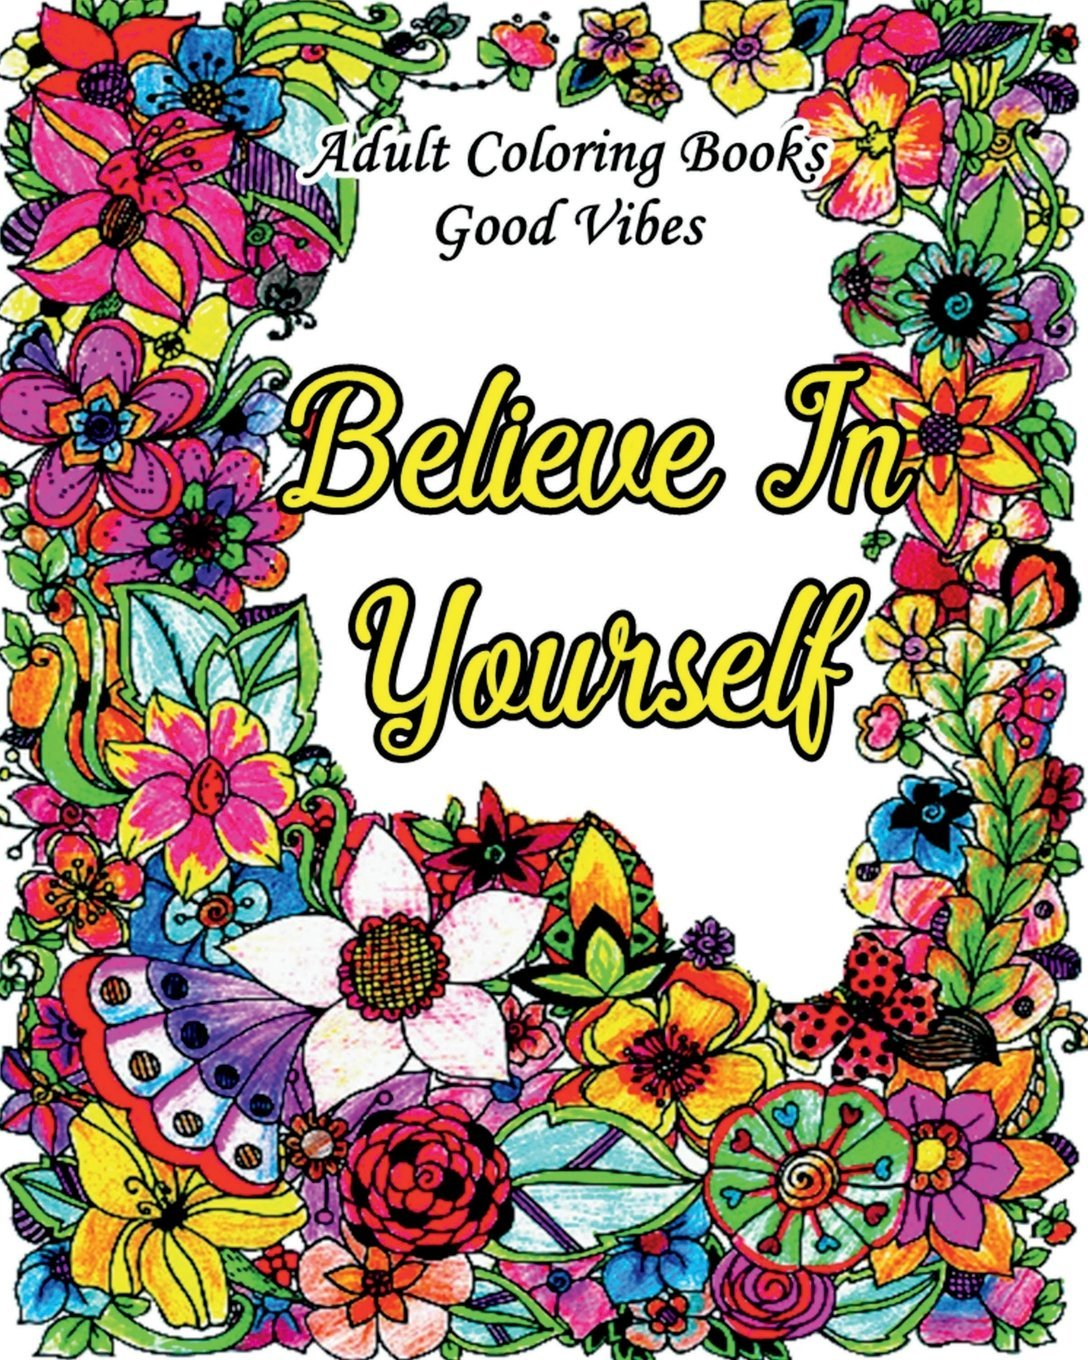 Download Adult Coloring Books Good Vibes: Inspirational Quotes Coloring Books, An Adult Coloring Book with Motivational Sayings (Animals & Flowers with Quotes) pdf epub